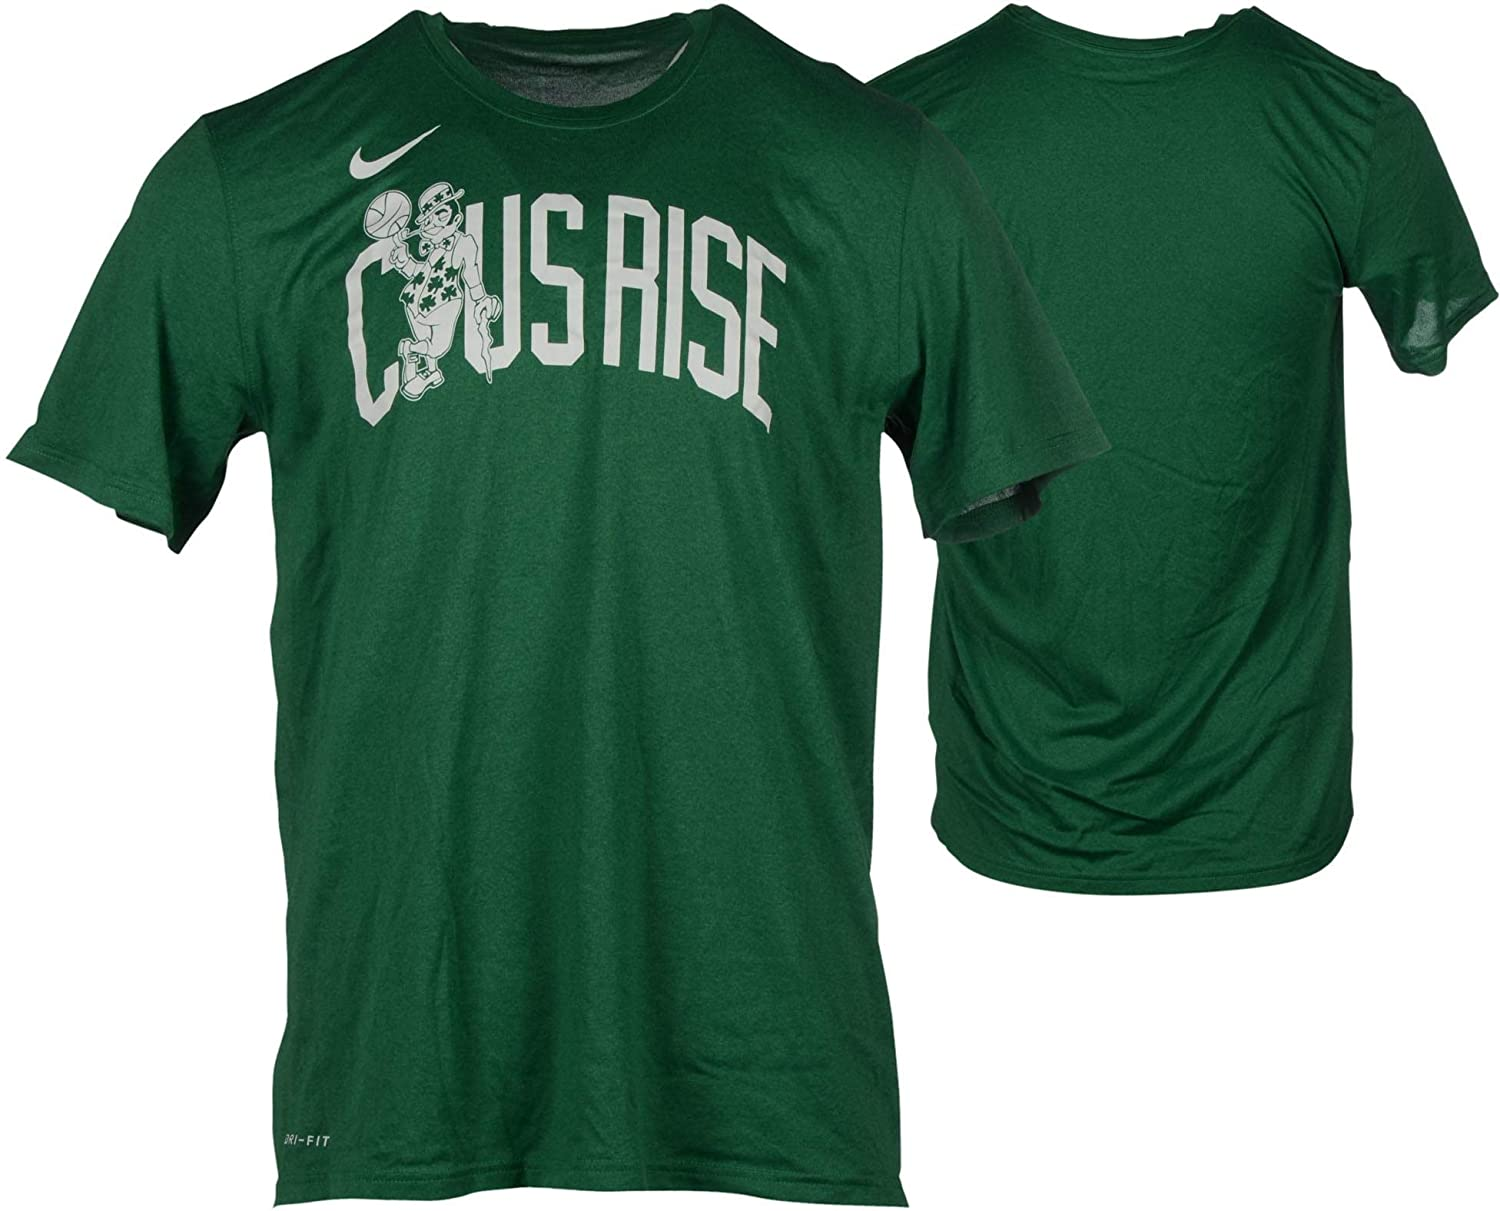 best cheap a5015 10b41 Amazon.com: Boston Celtics Team-Issued Green Shirt from the ...